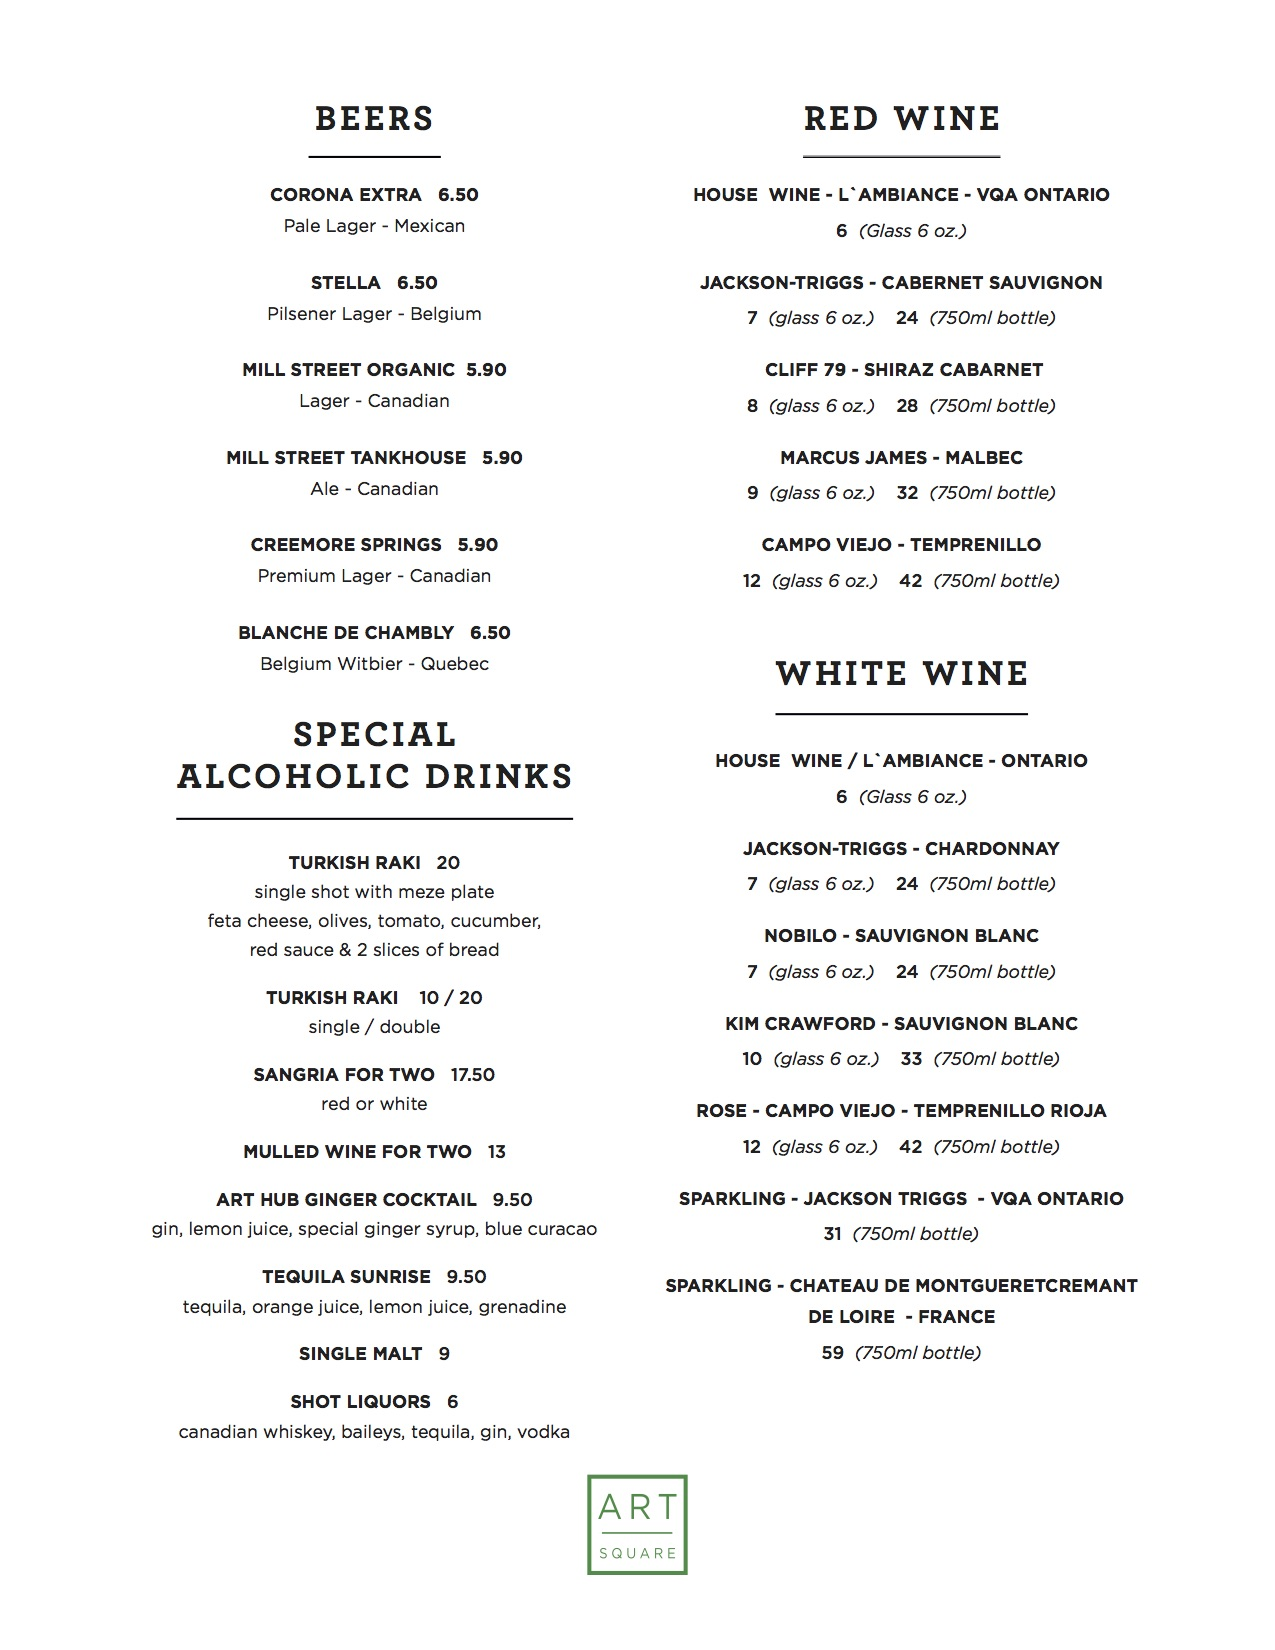 Art Square Menu final April 2016_new_Page_08.jpg